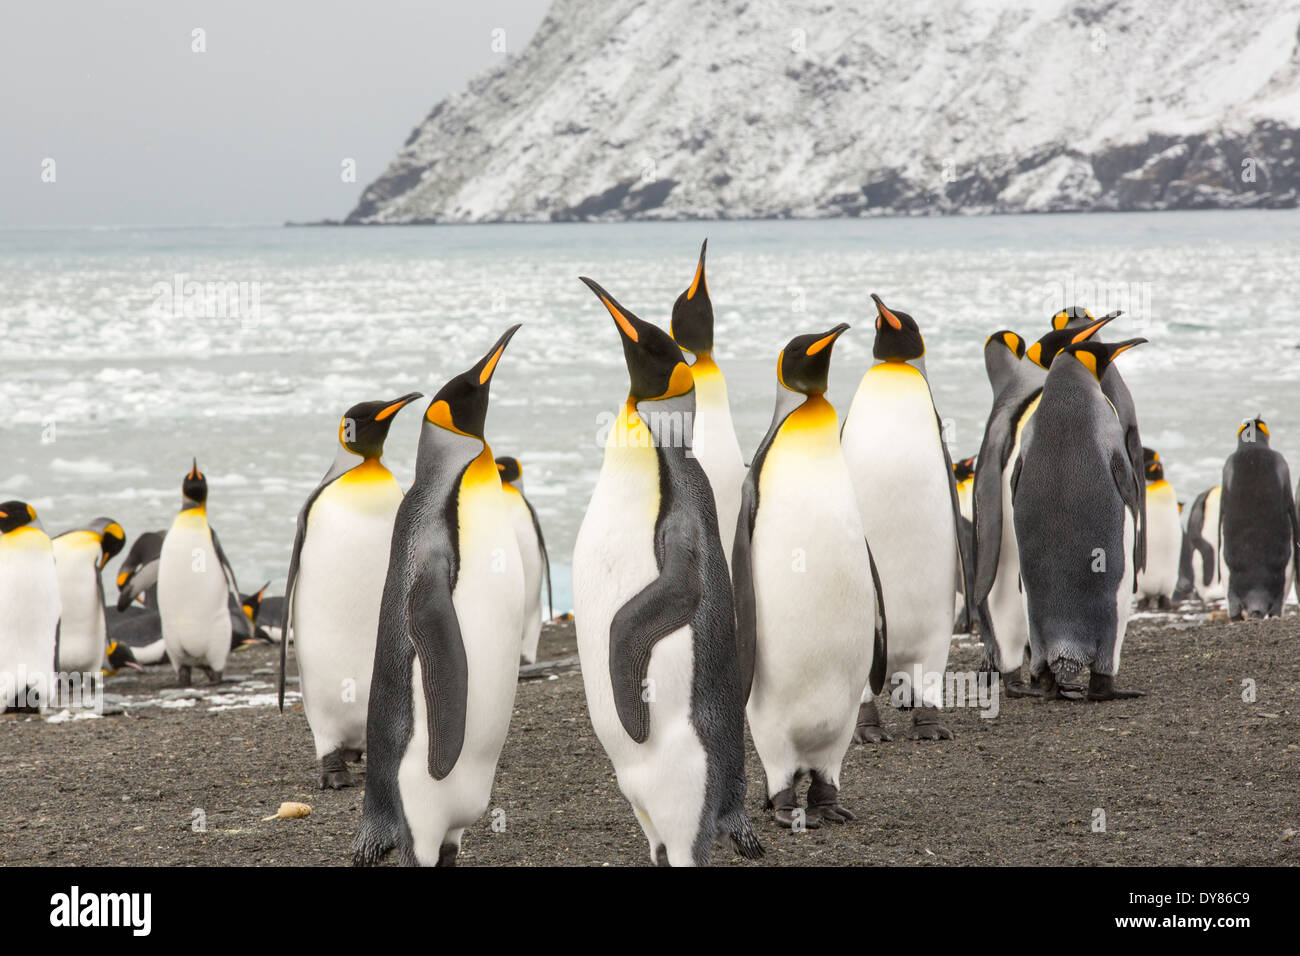 King Penguins at Gold Harbour, South Georgia, Southern Ocean. - Stock Image